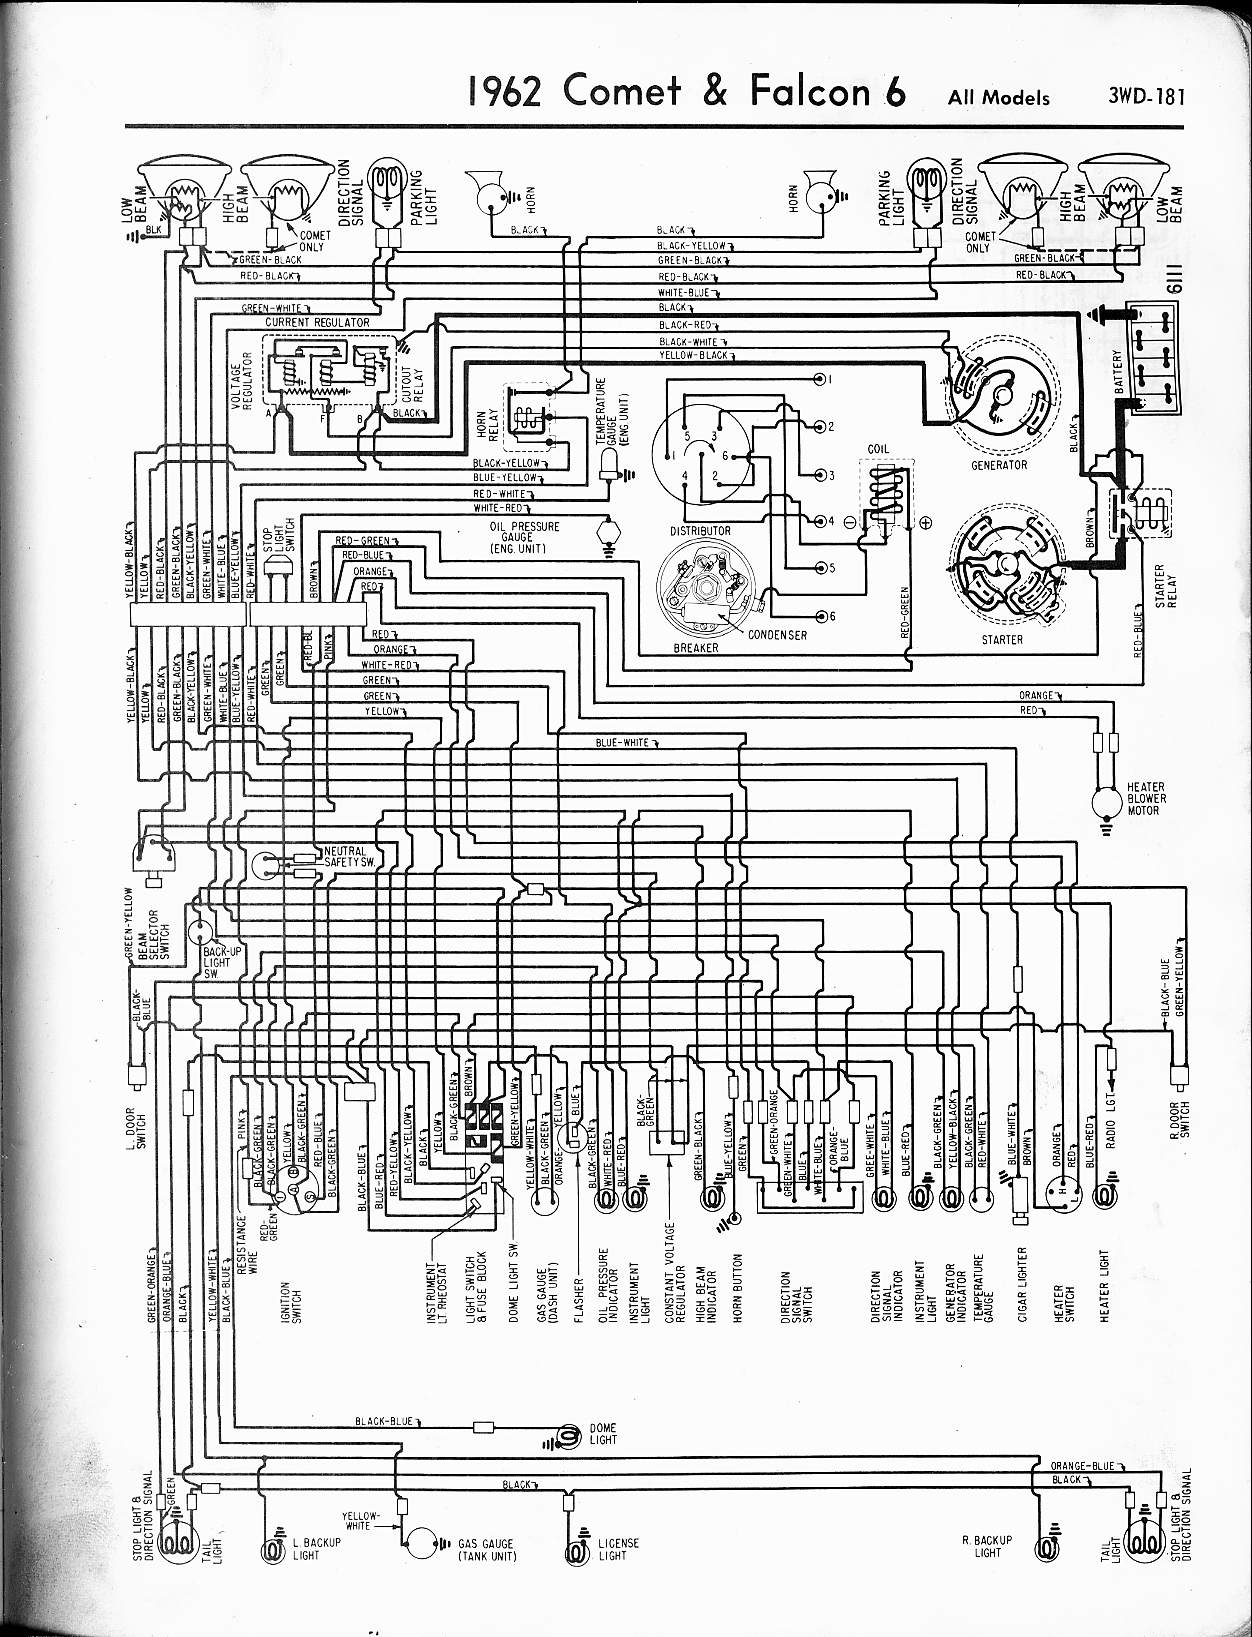 57-65 Ford Wiring Diagrams on pickup truck diagram, 1968 ford truck radio, 1968 ford truck cab mount, 1968 ford truck parts, 1968 ford truck brochure, 1968 ford truck exhaust, 1968 ford truck air cleaner, 1968 ford truck shop manual, truck parts diagram, 93 ford relay diagram, 1968 ford truck transmission, 1968 ford truck wire schematic drawing, 1968 ford truck carburetor, ford truck engine diagram, ford truck rear brake diagram, 1968 ford truck wheels,